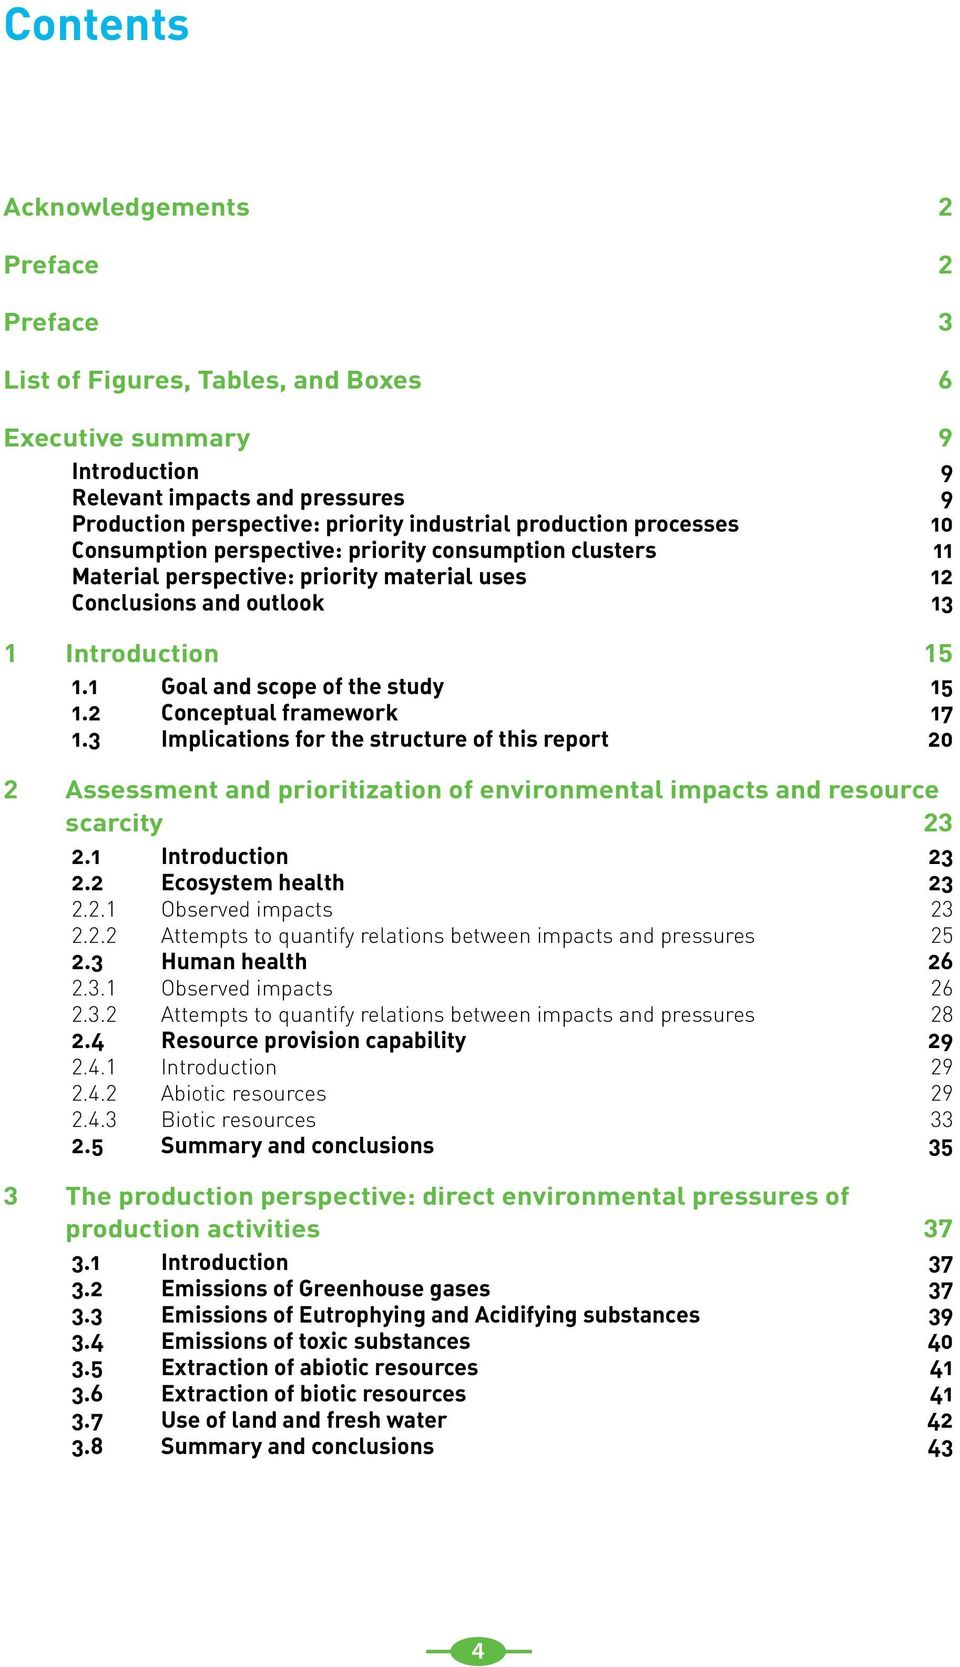 1 Goal and scope of the study 15 1.2 Conceptual framework 17 1.3 Implications for the structure of this report 20 2 Assessment and prioritization of environmental impacts and resource scarcity 23 2.